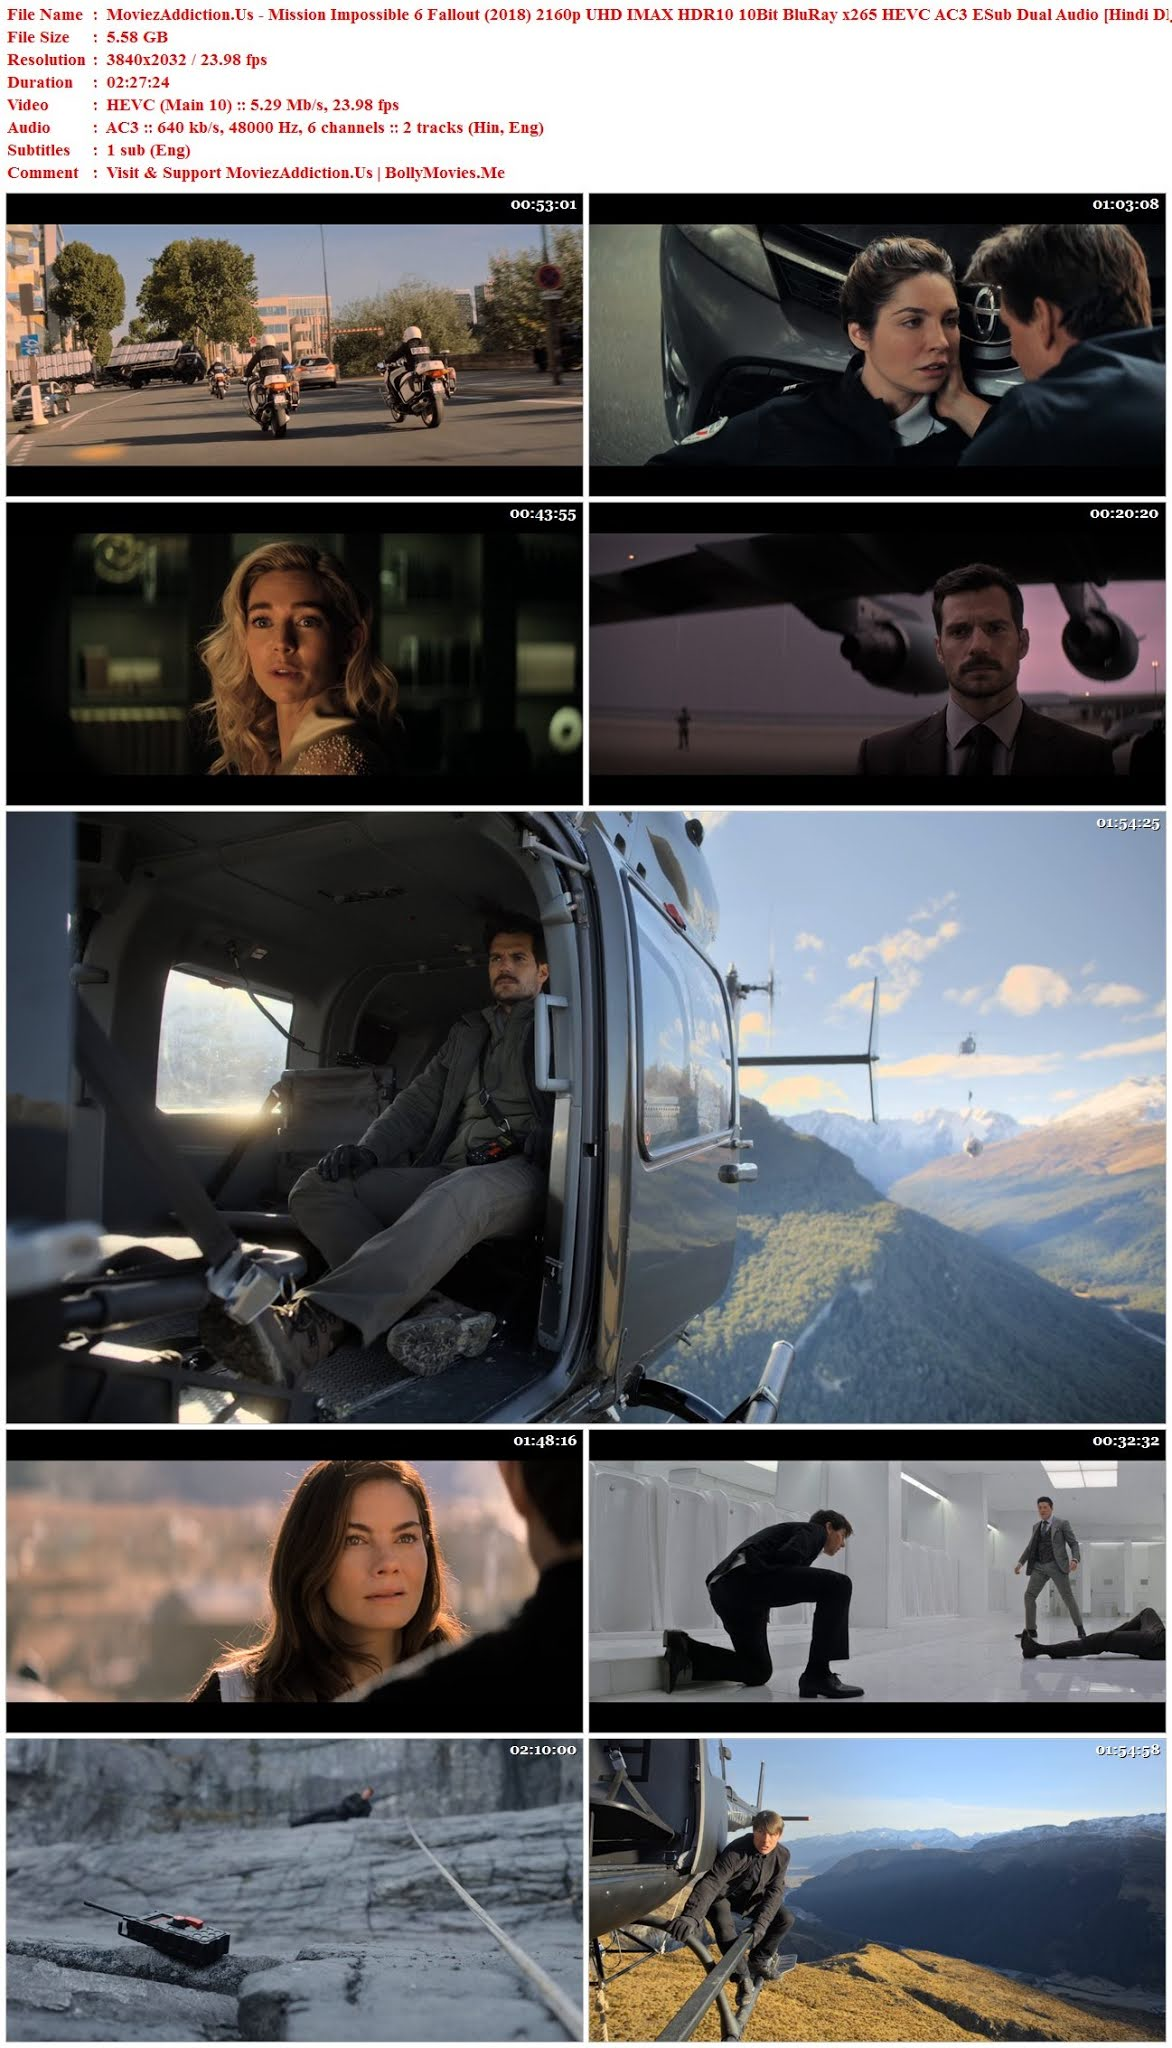 Download Mission Impossible 6 Fallout